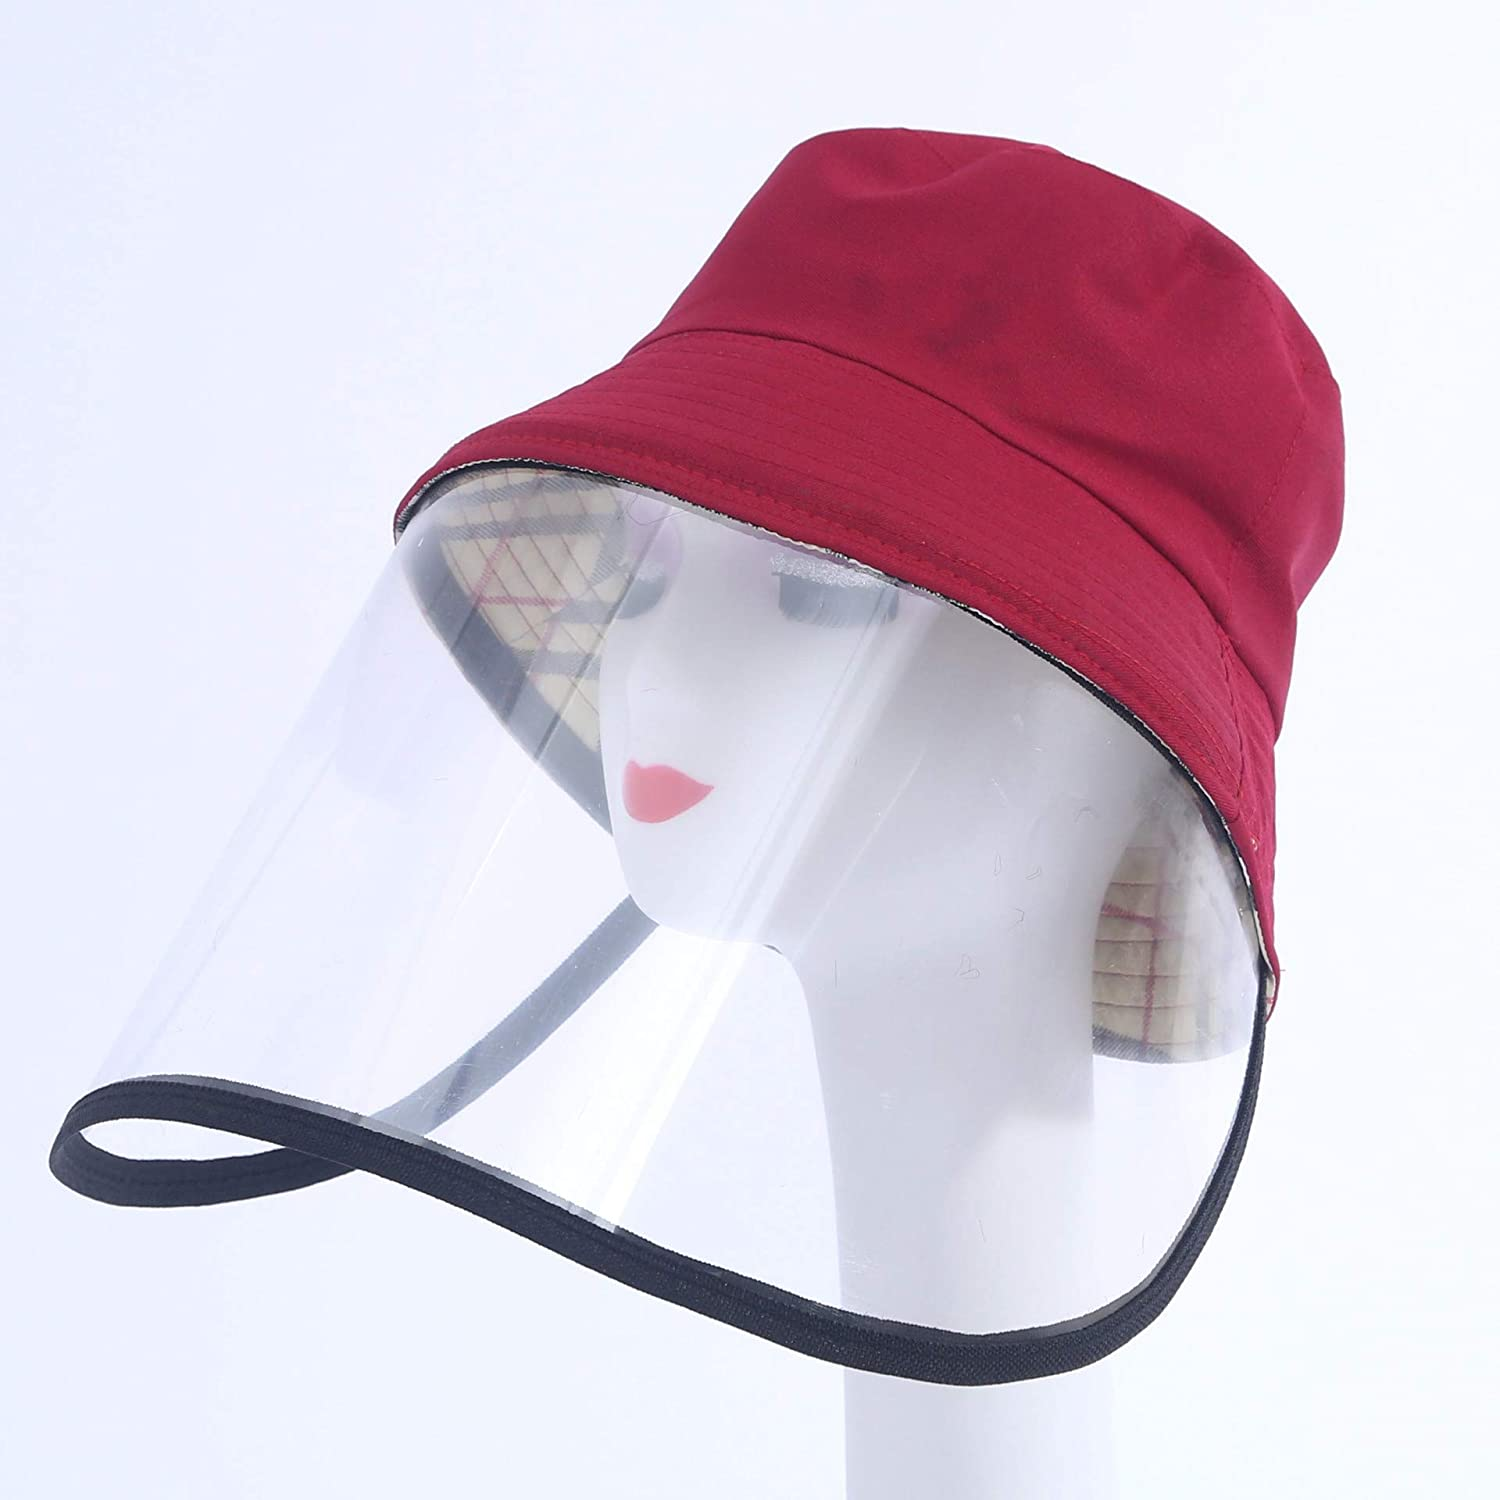 Full Face Isolation Anti-Pollution Hat Fishing Hat Hiking Boonie Hat Anti Saliva Fog UV Hat with Face Shield Flovey Protection Hat for Men /& Women Camping